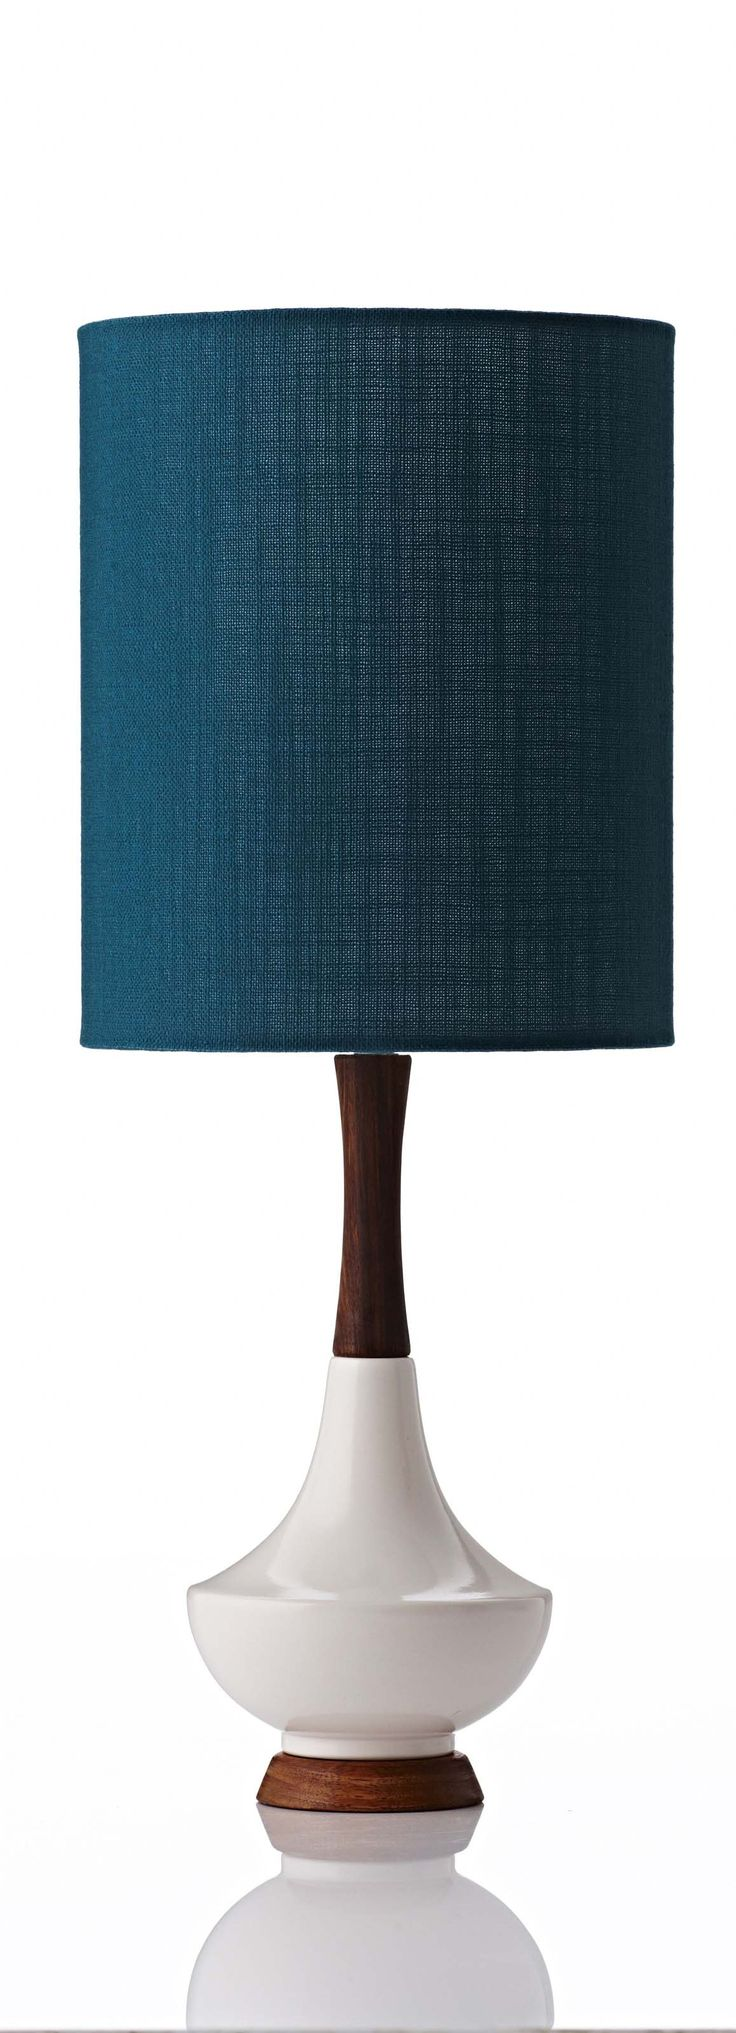 Electra small table lamp in ivy jungle